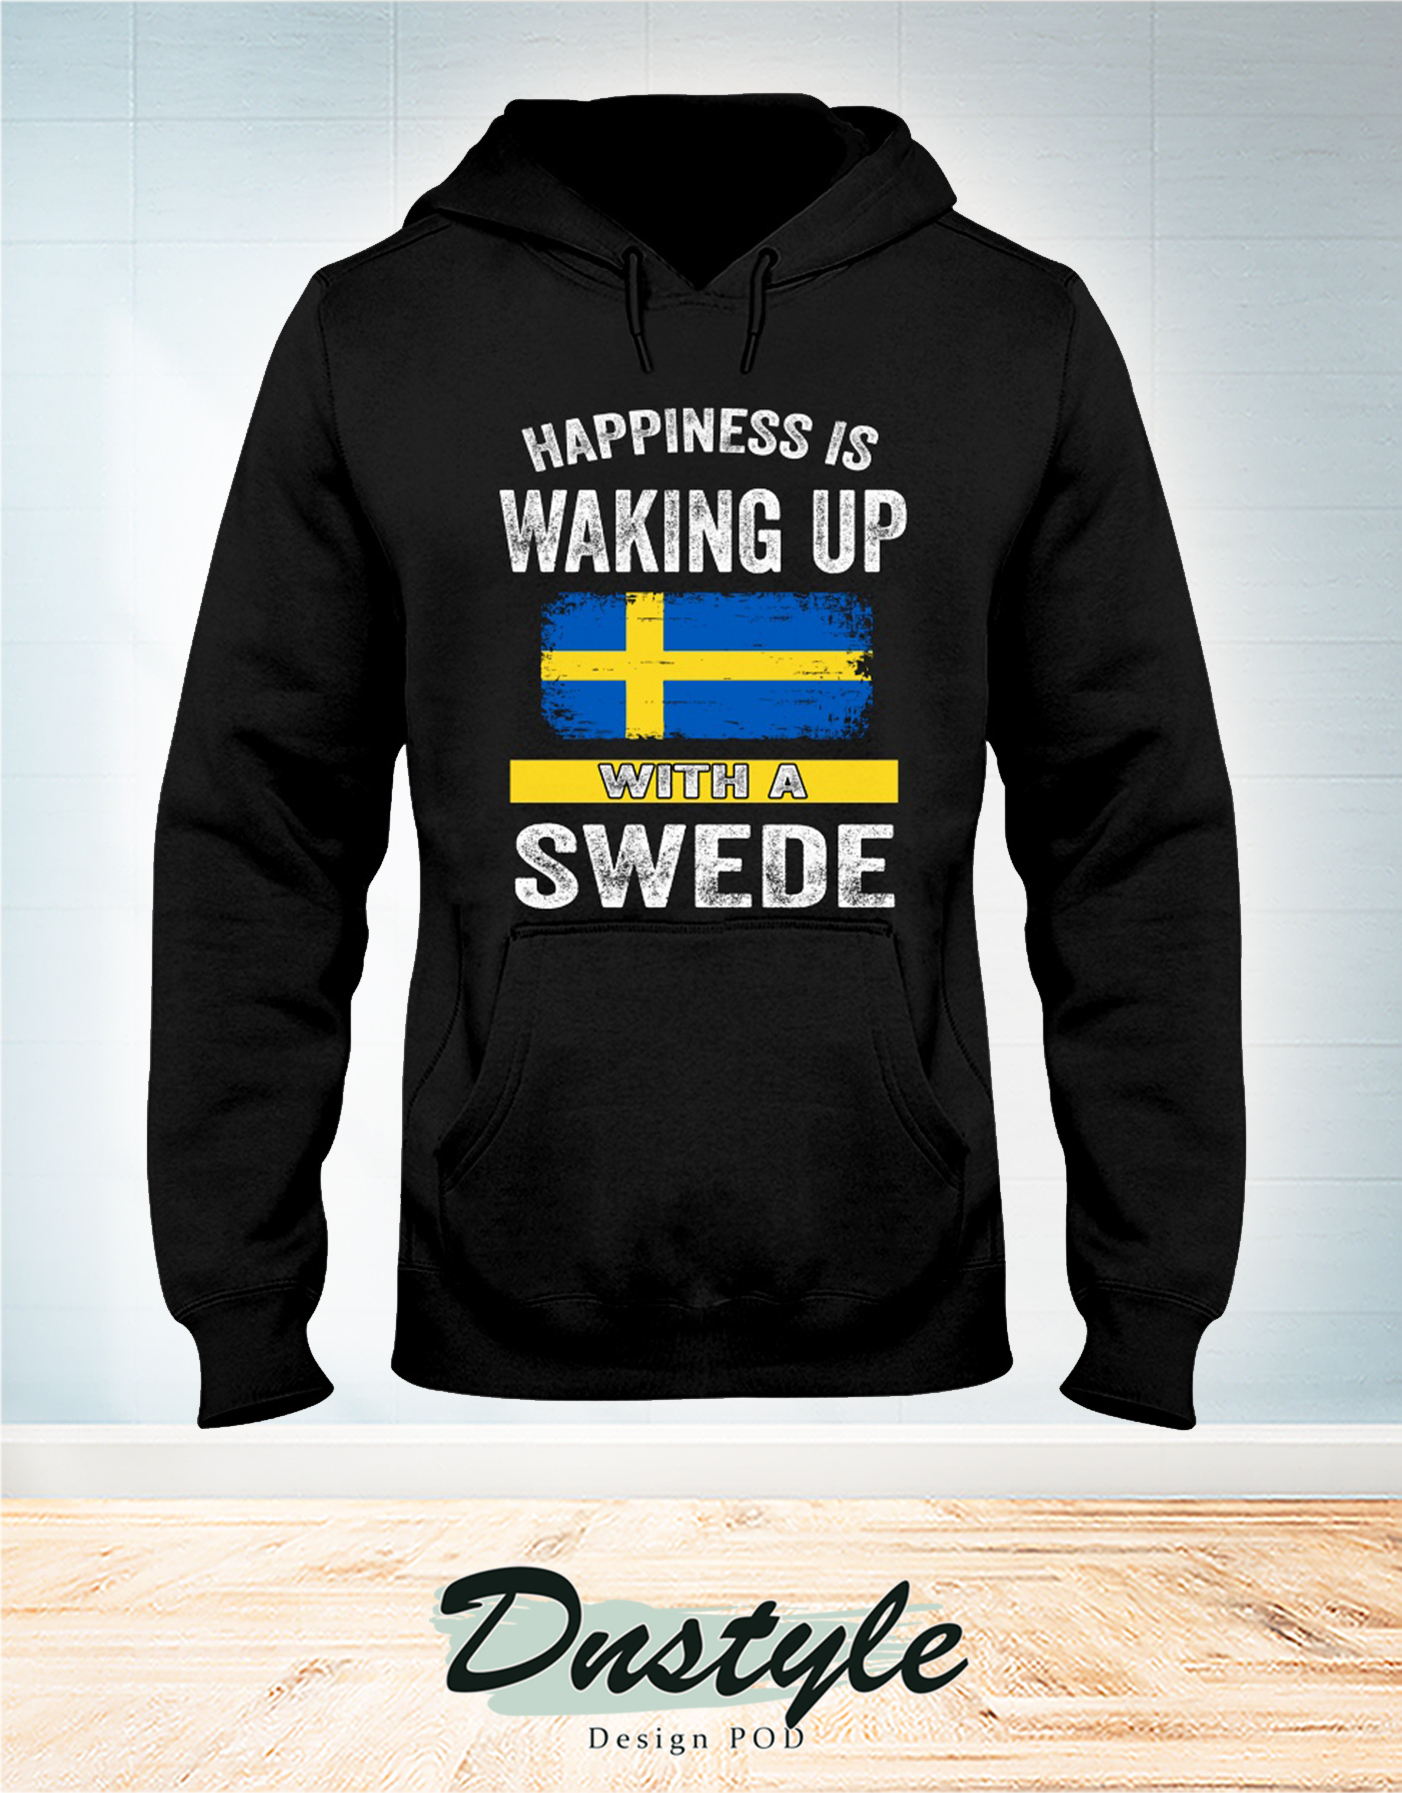 Happiness is waking up with a swede hoodie